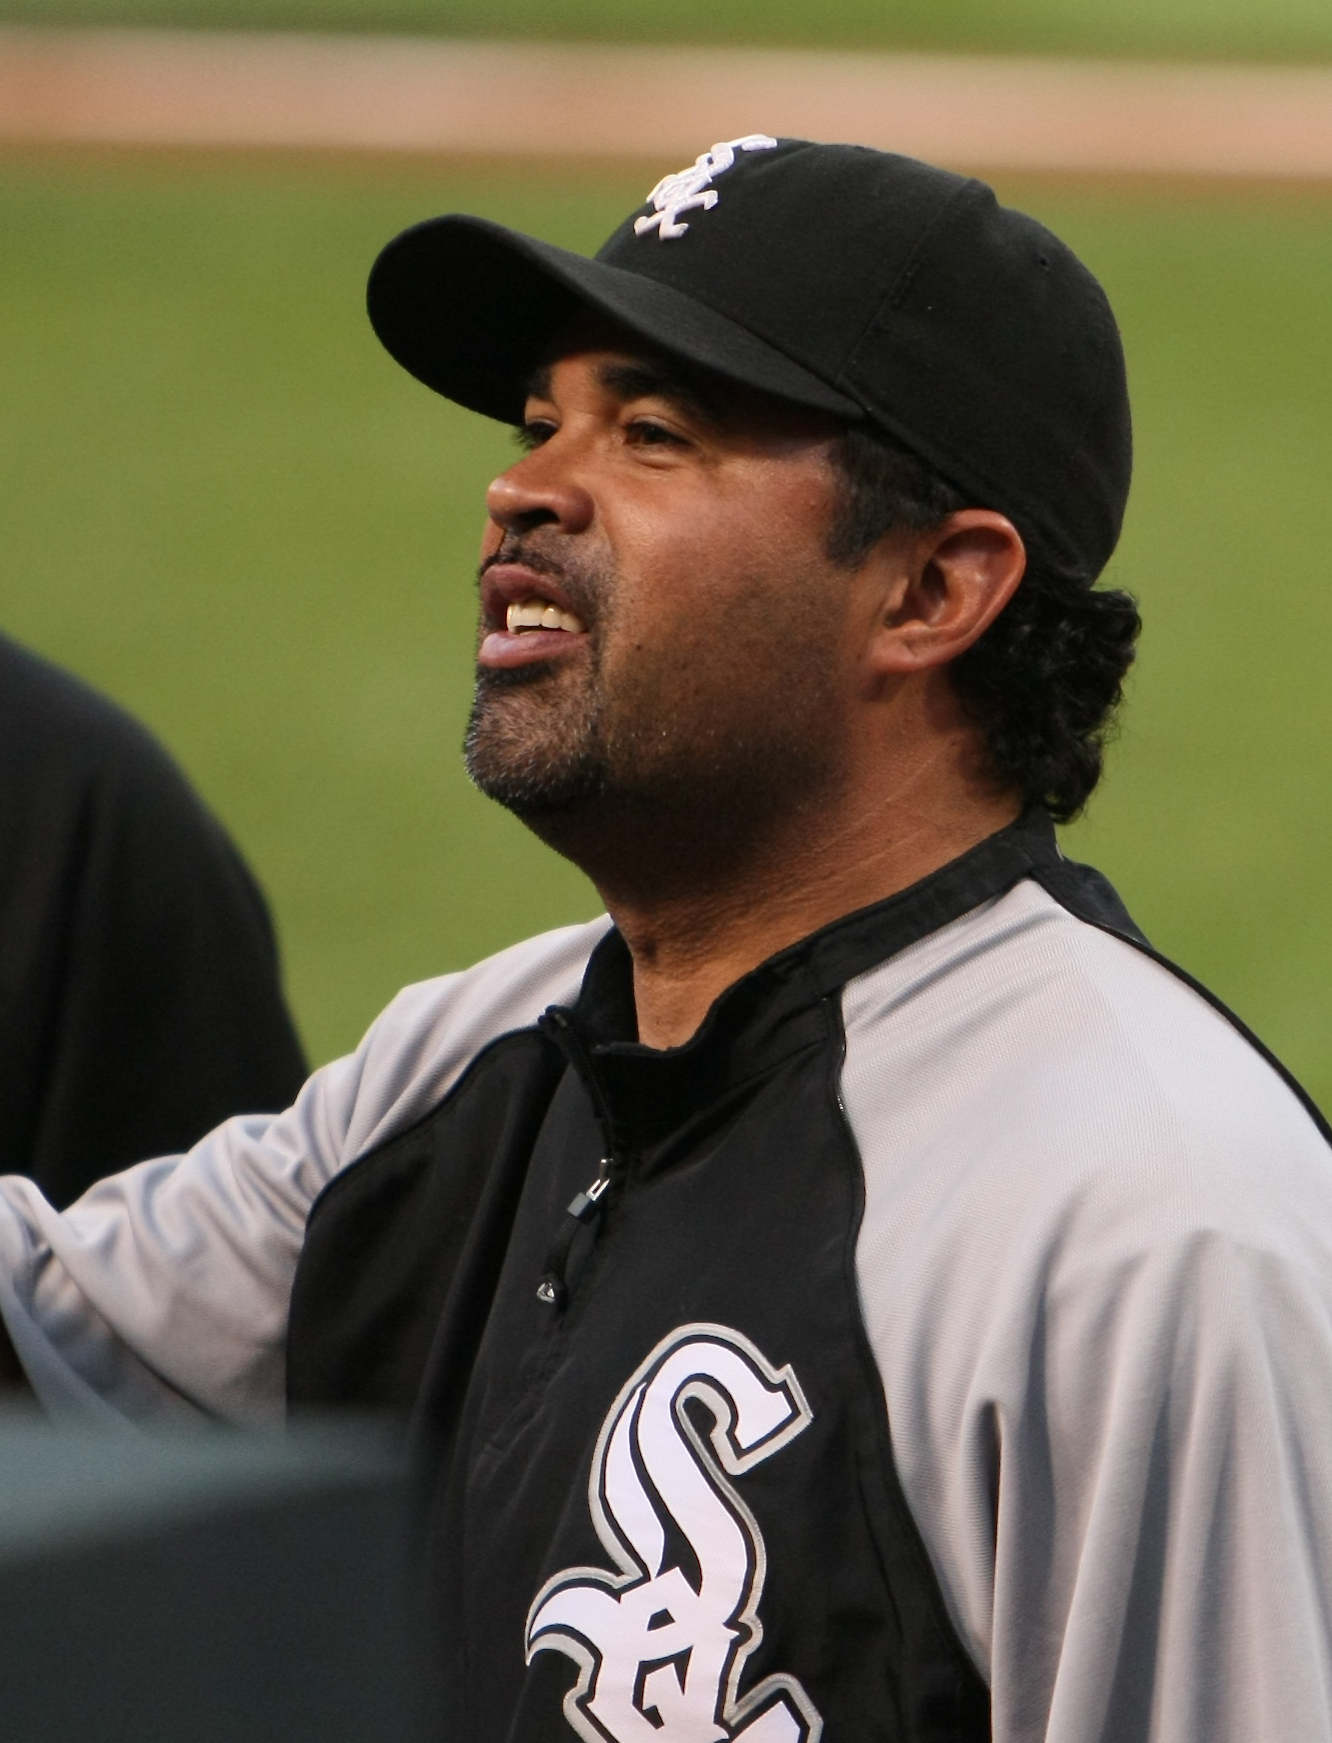 File:OZZIE GUILLEN by Keith Allison.jpg - Wikipedia, the free ...